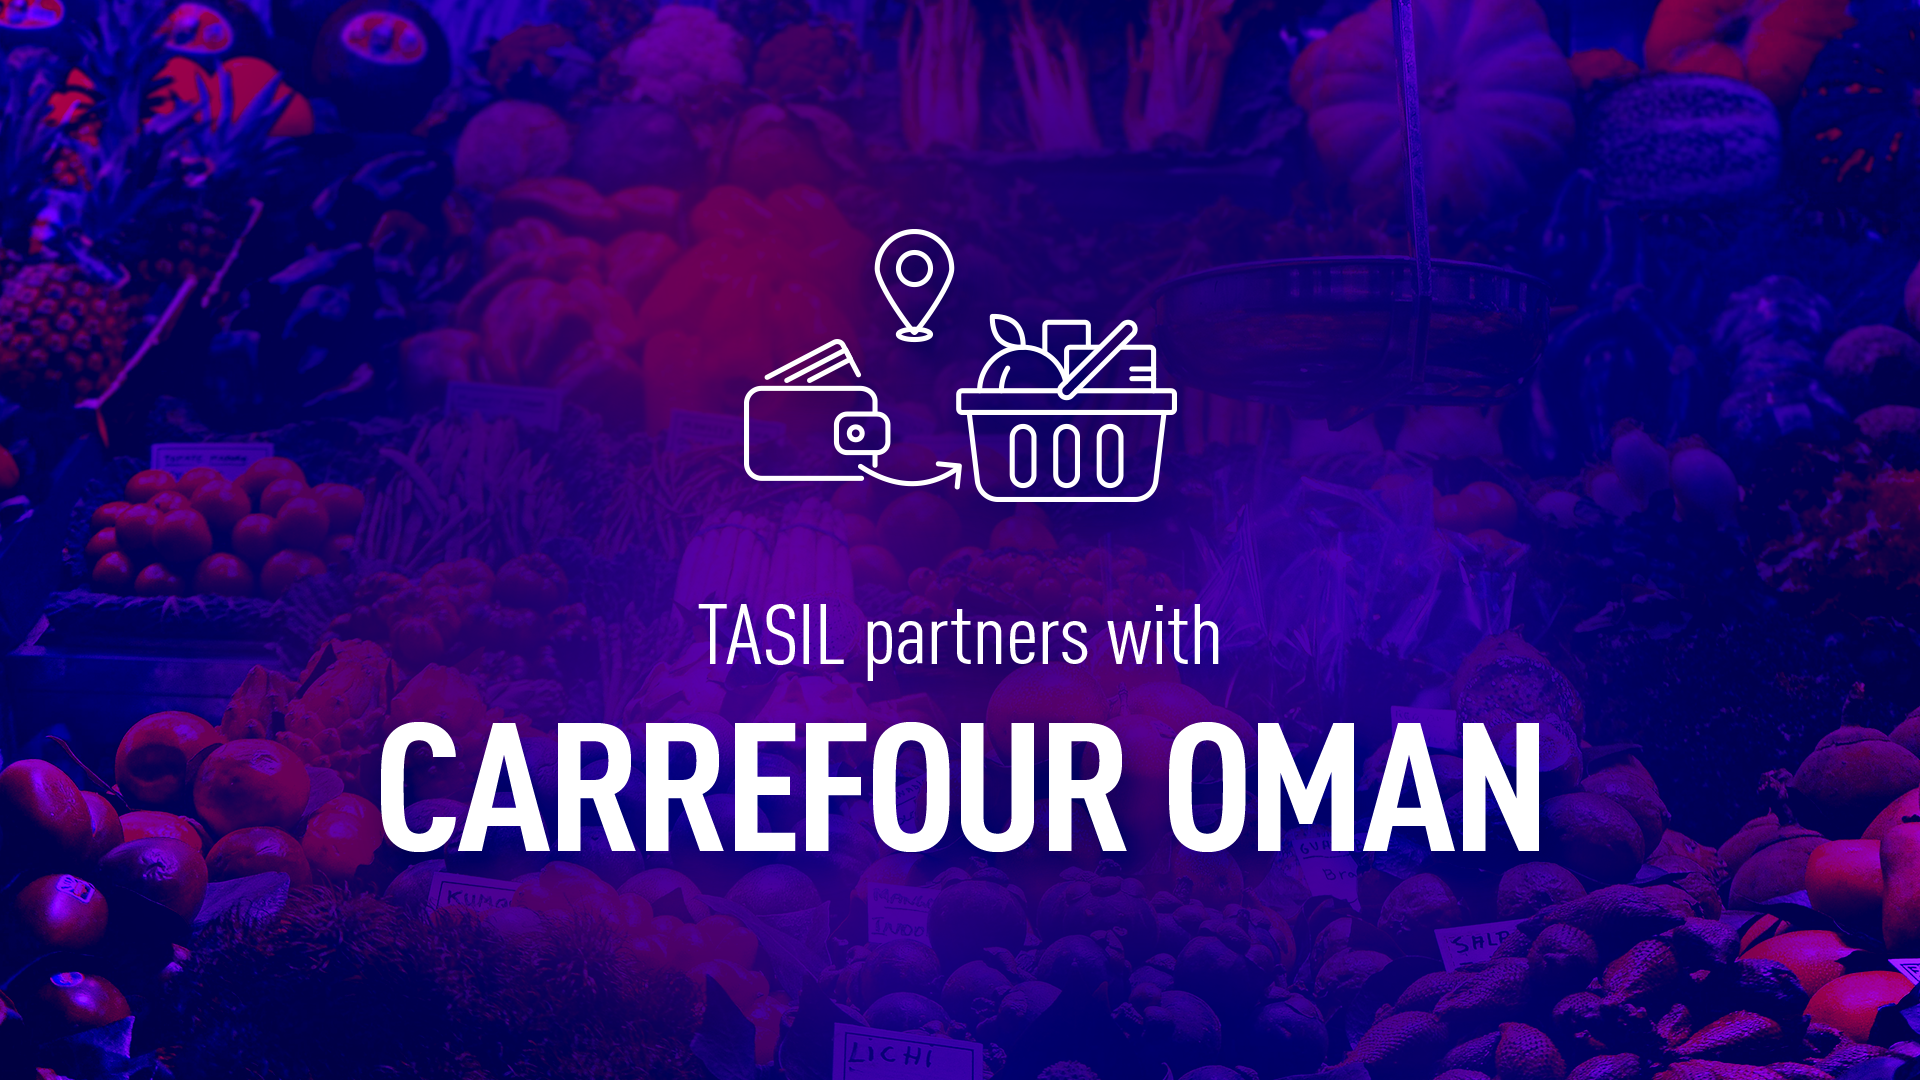 TASIL partners with Carrefour Oman